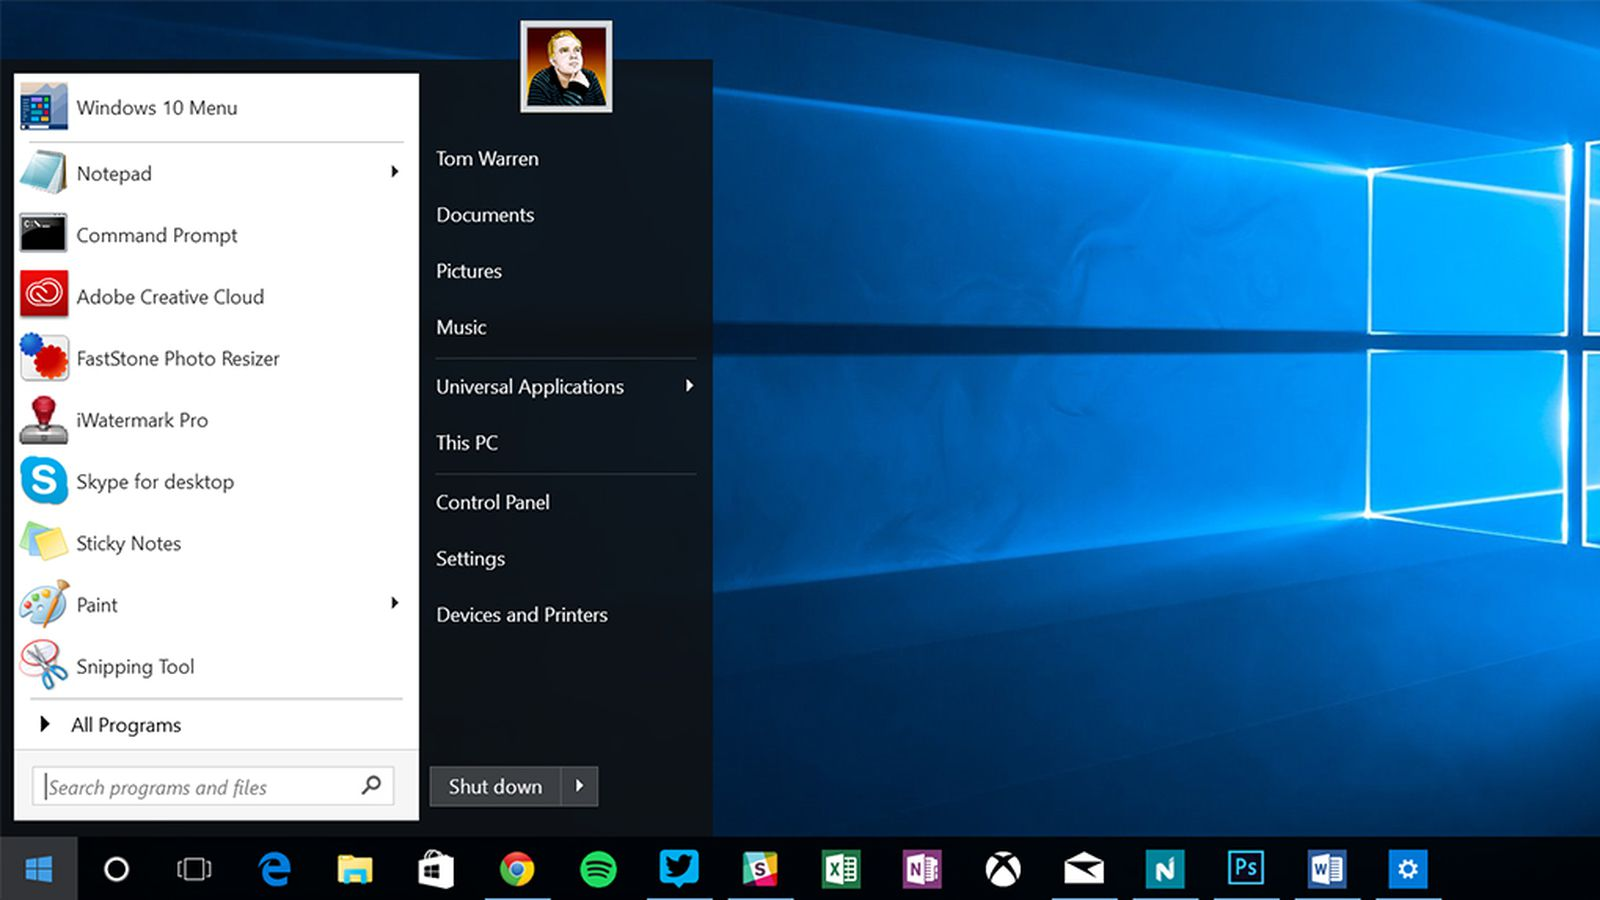 how to go back from windows 10 to windows 7